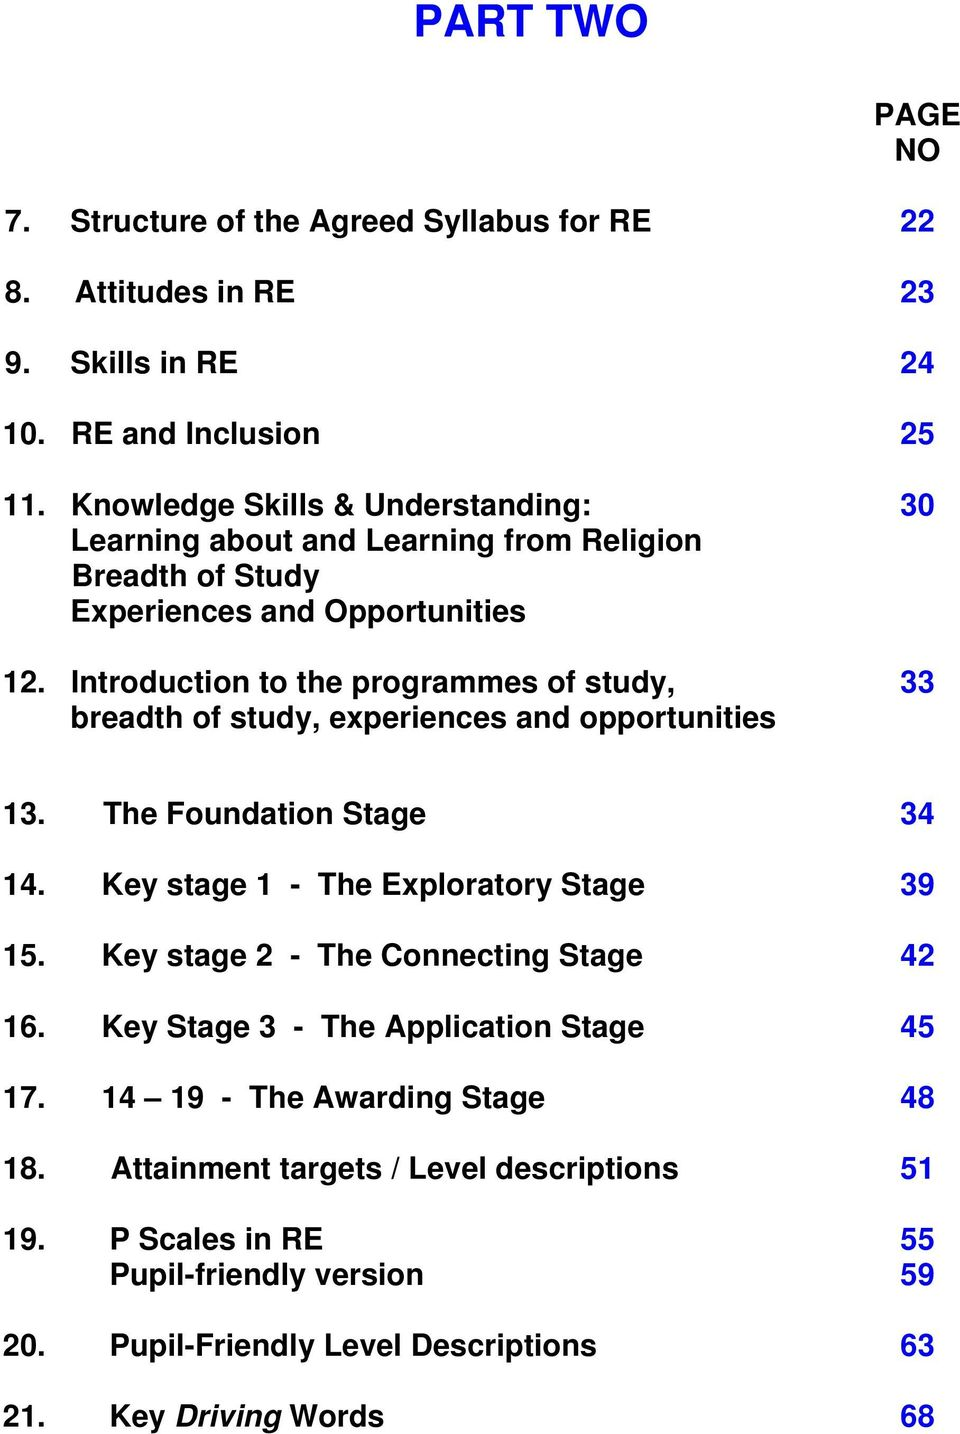 Introduction to the programmes of study, breadth of study, experiences and opportunities 30 33 13. The Foundation Stage 34 14. Key stage 1 - The Exploratory Stage 39 15.